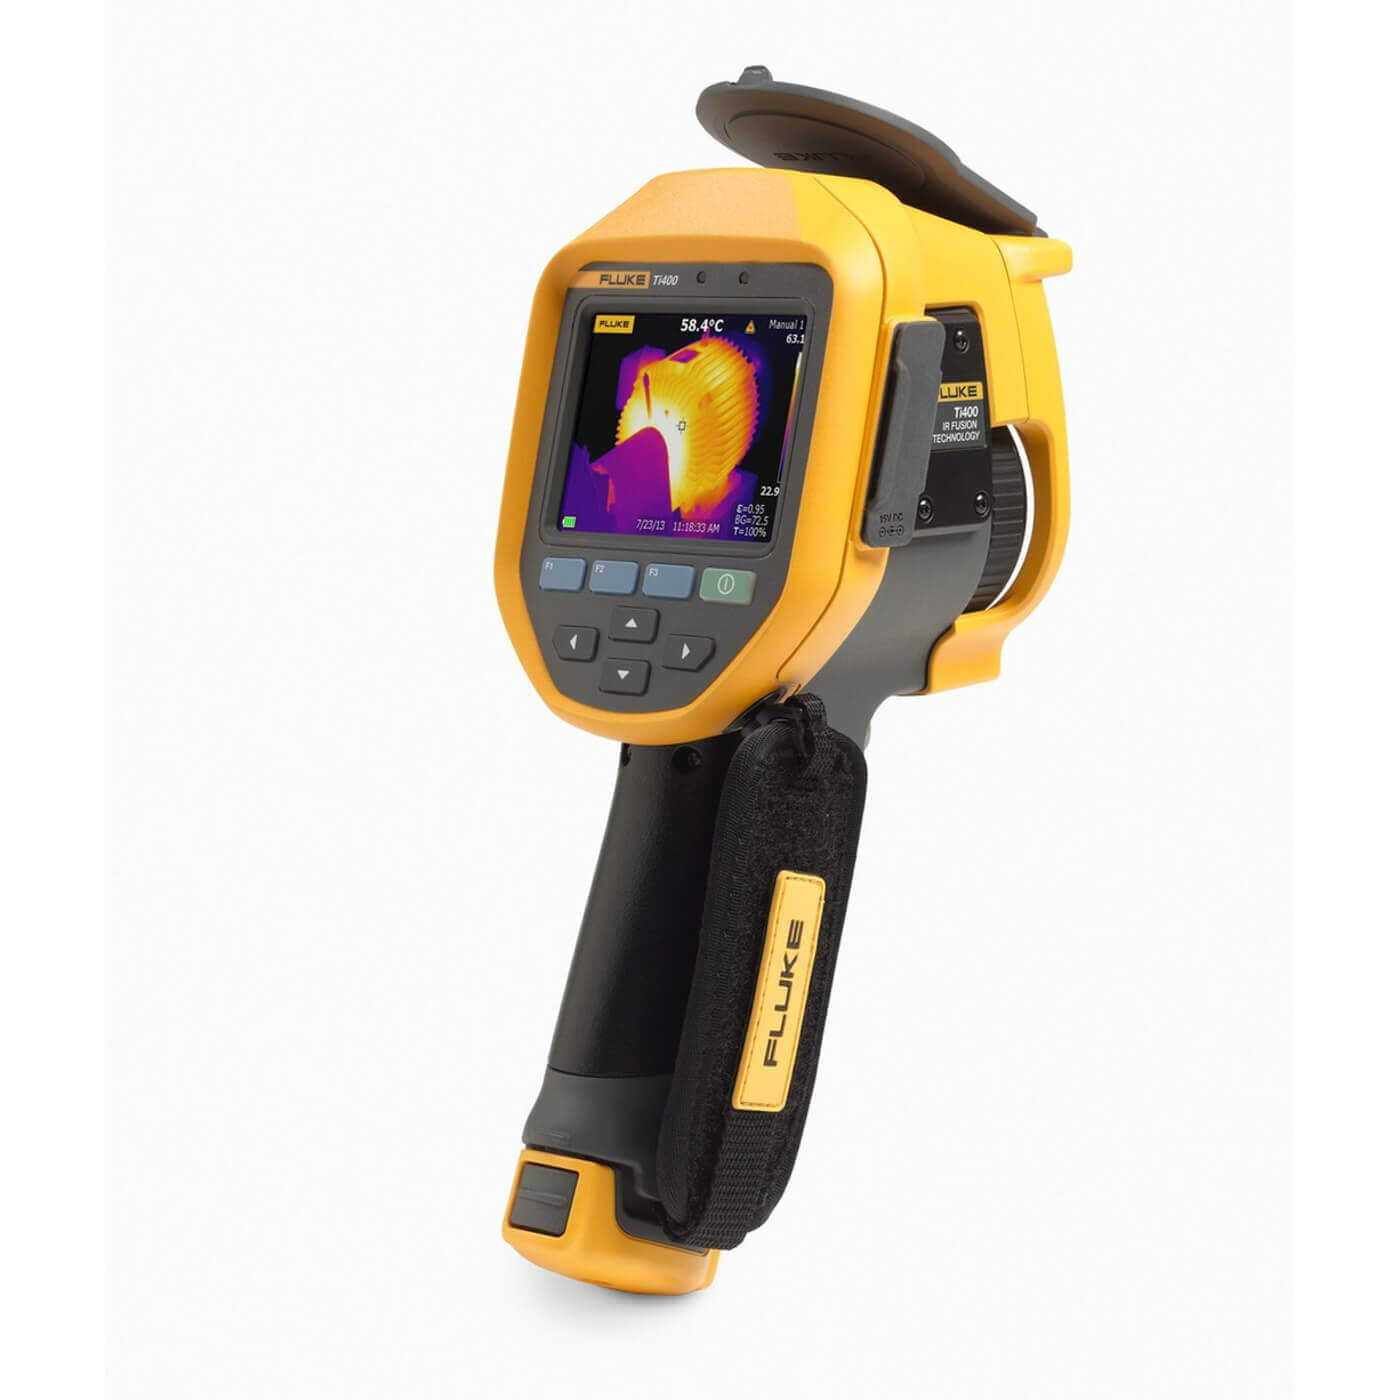 Fluke FLK-TI400 60HZ Industrial Thermal Infrared Camera review